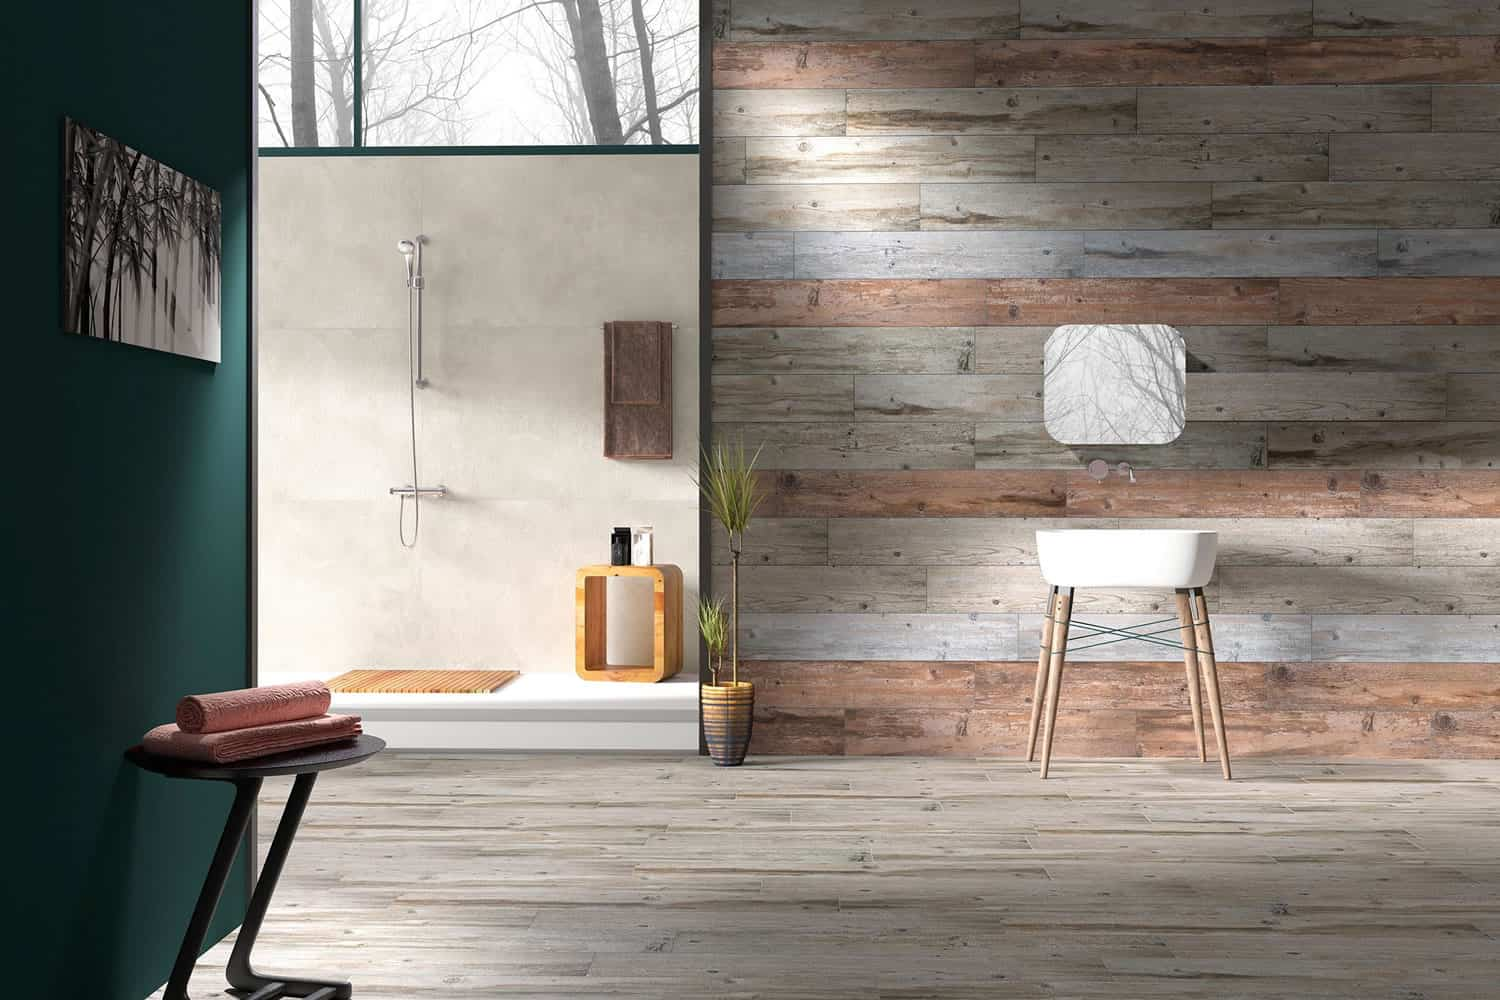 Swell Wood Effect Tiles For Floors And Walls 30 Nicest Porcelain Download Free Architecture Designs Sospemadebymaigaardcom